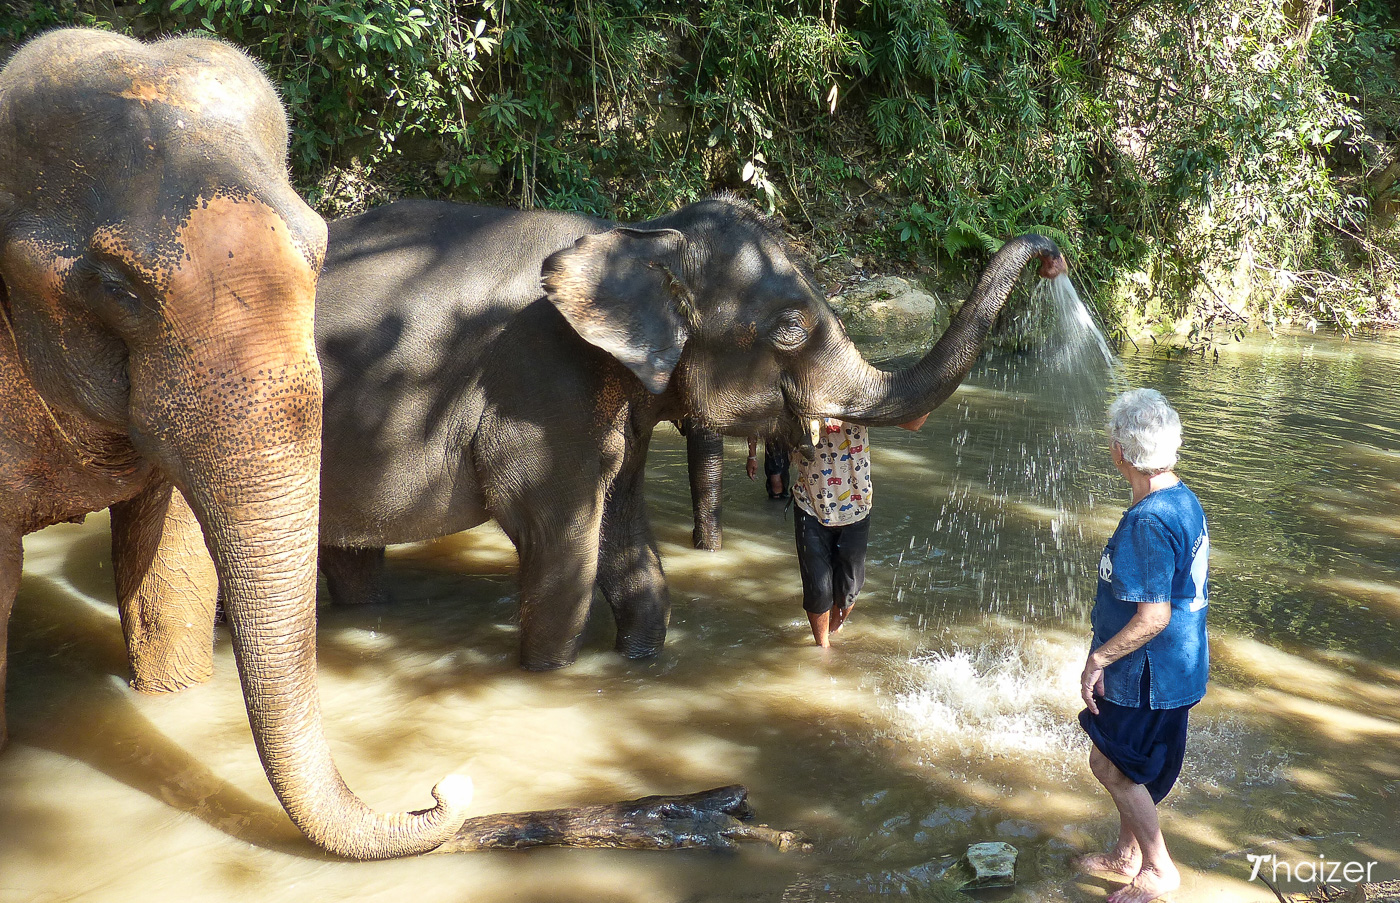 elephant shower time at Tong Bai Foundation, north Thailand